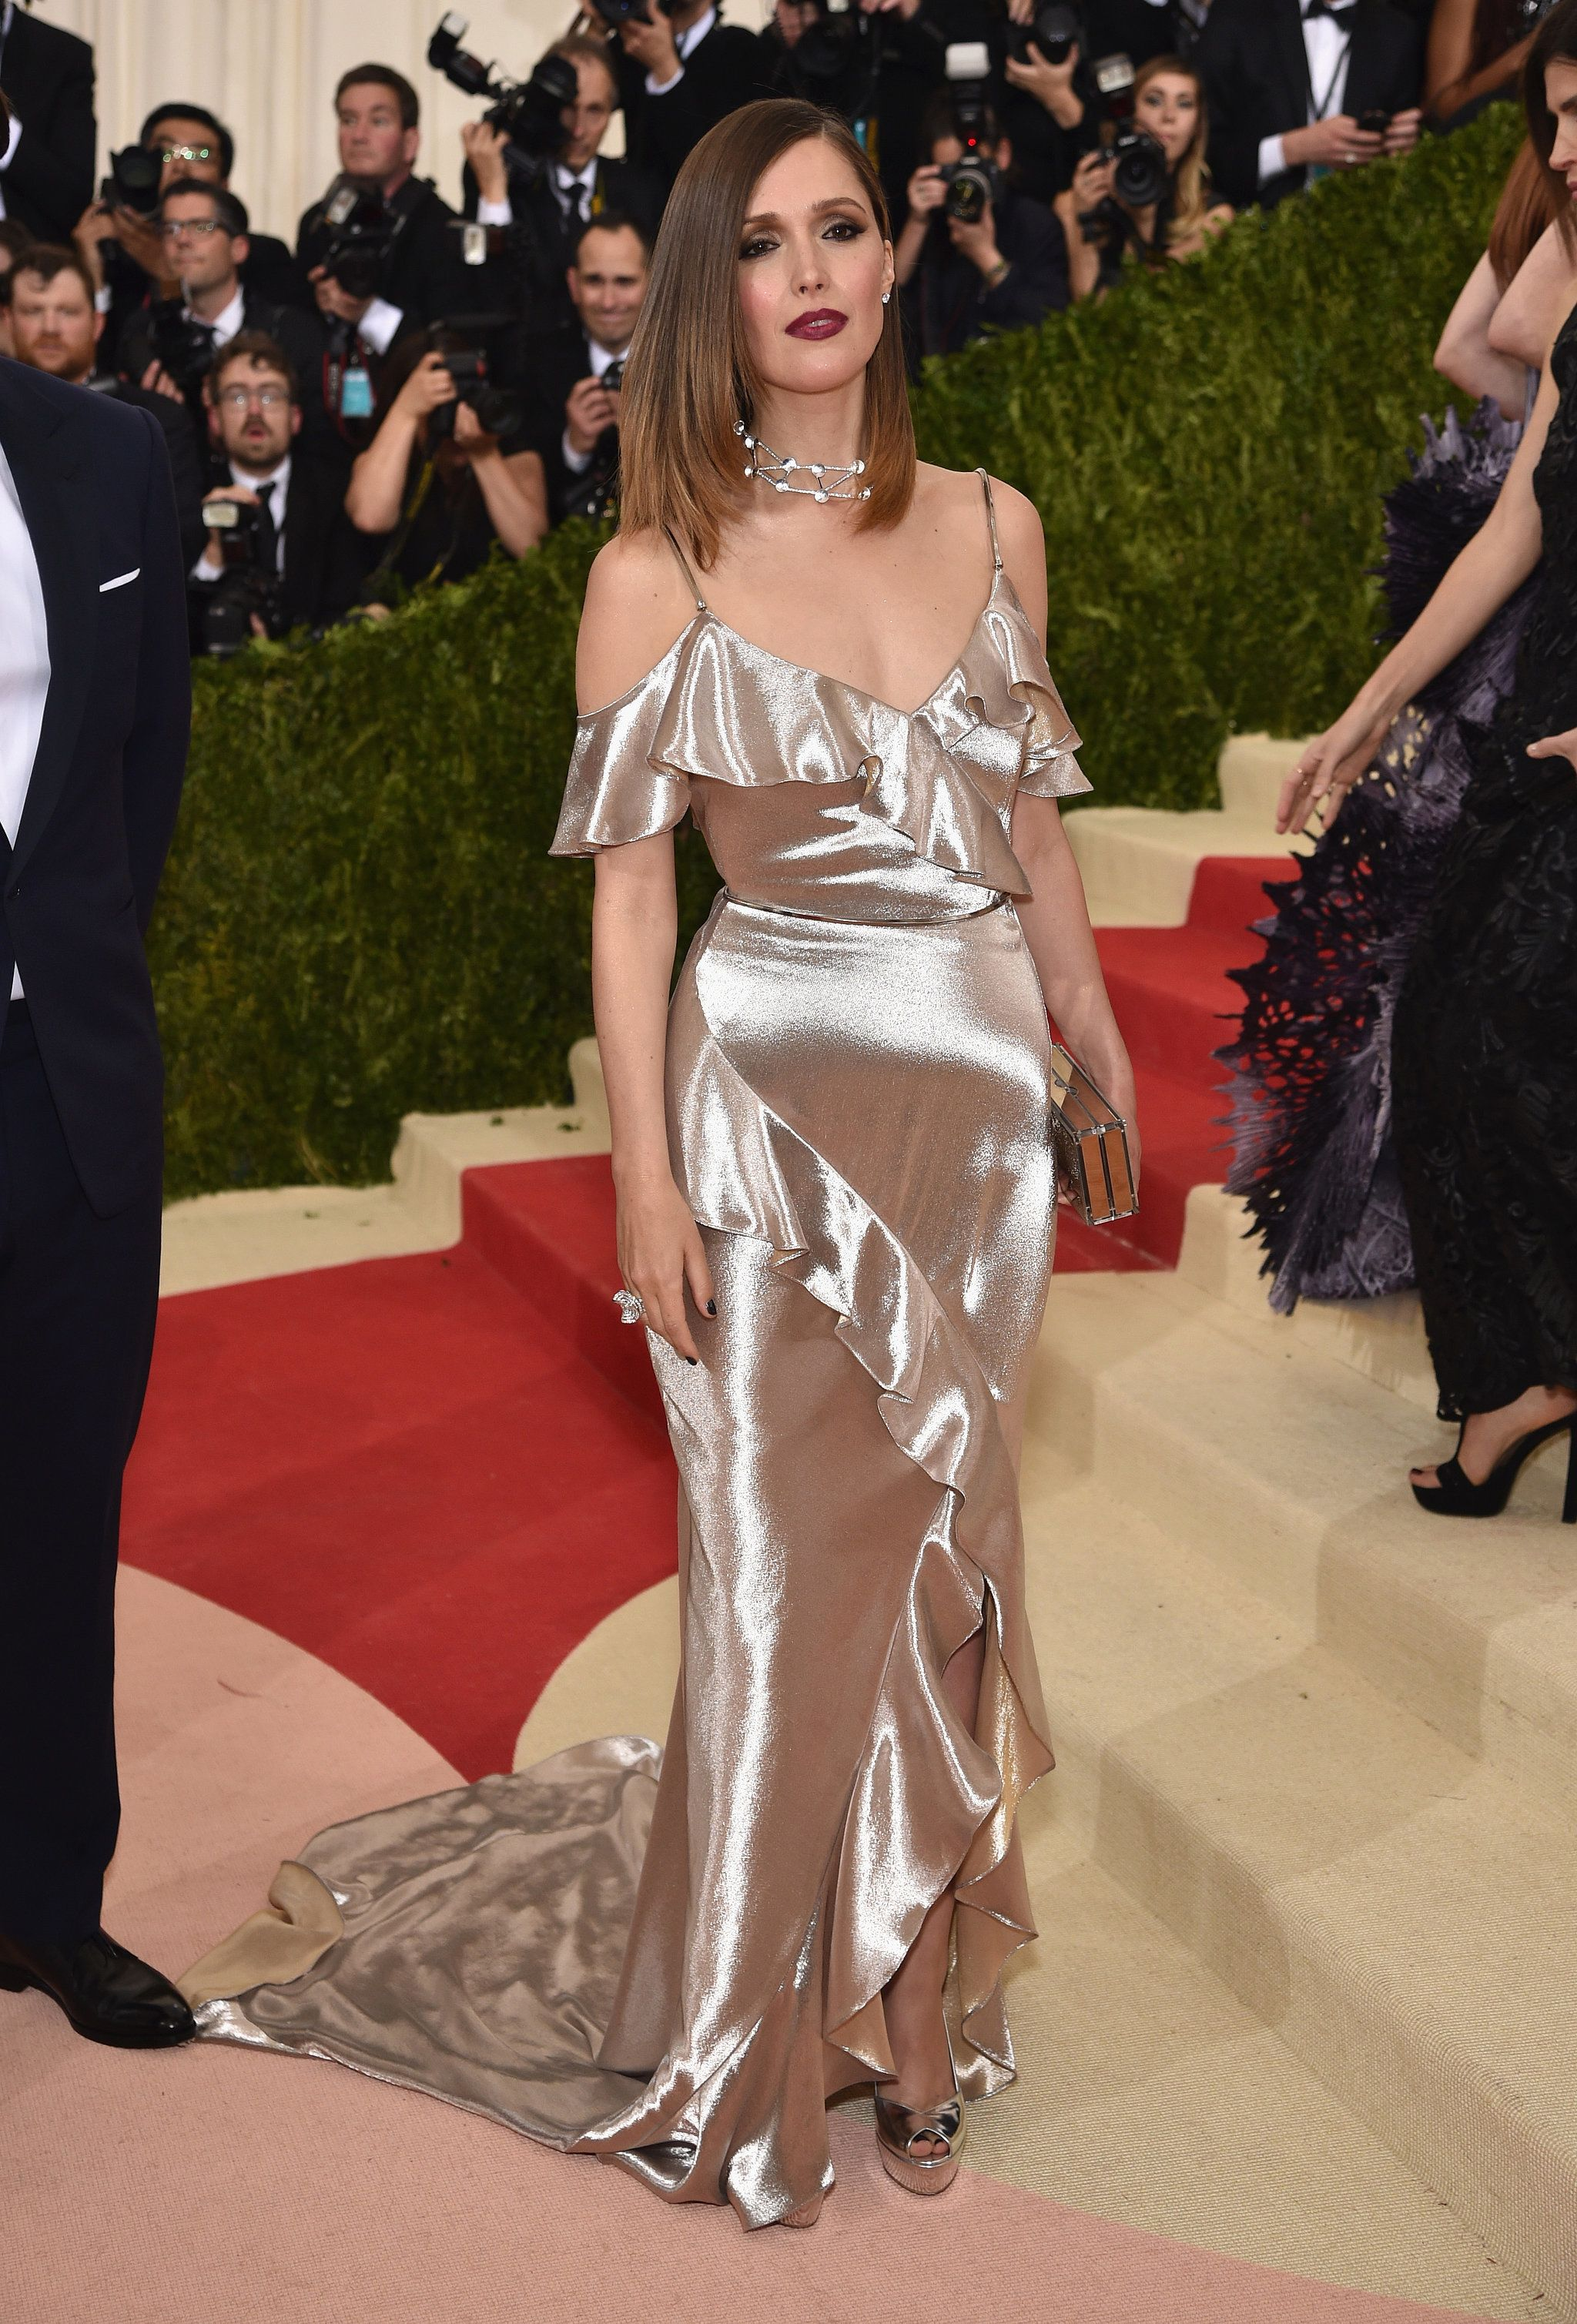 pics Rose byrne at met gala in new york